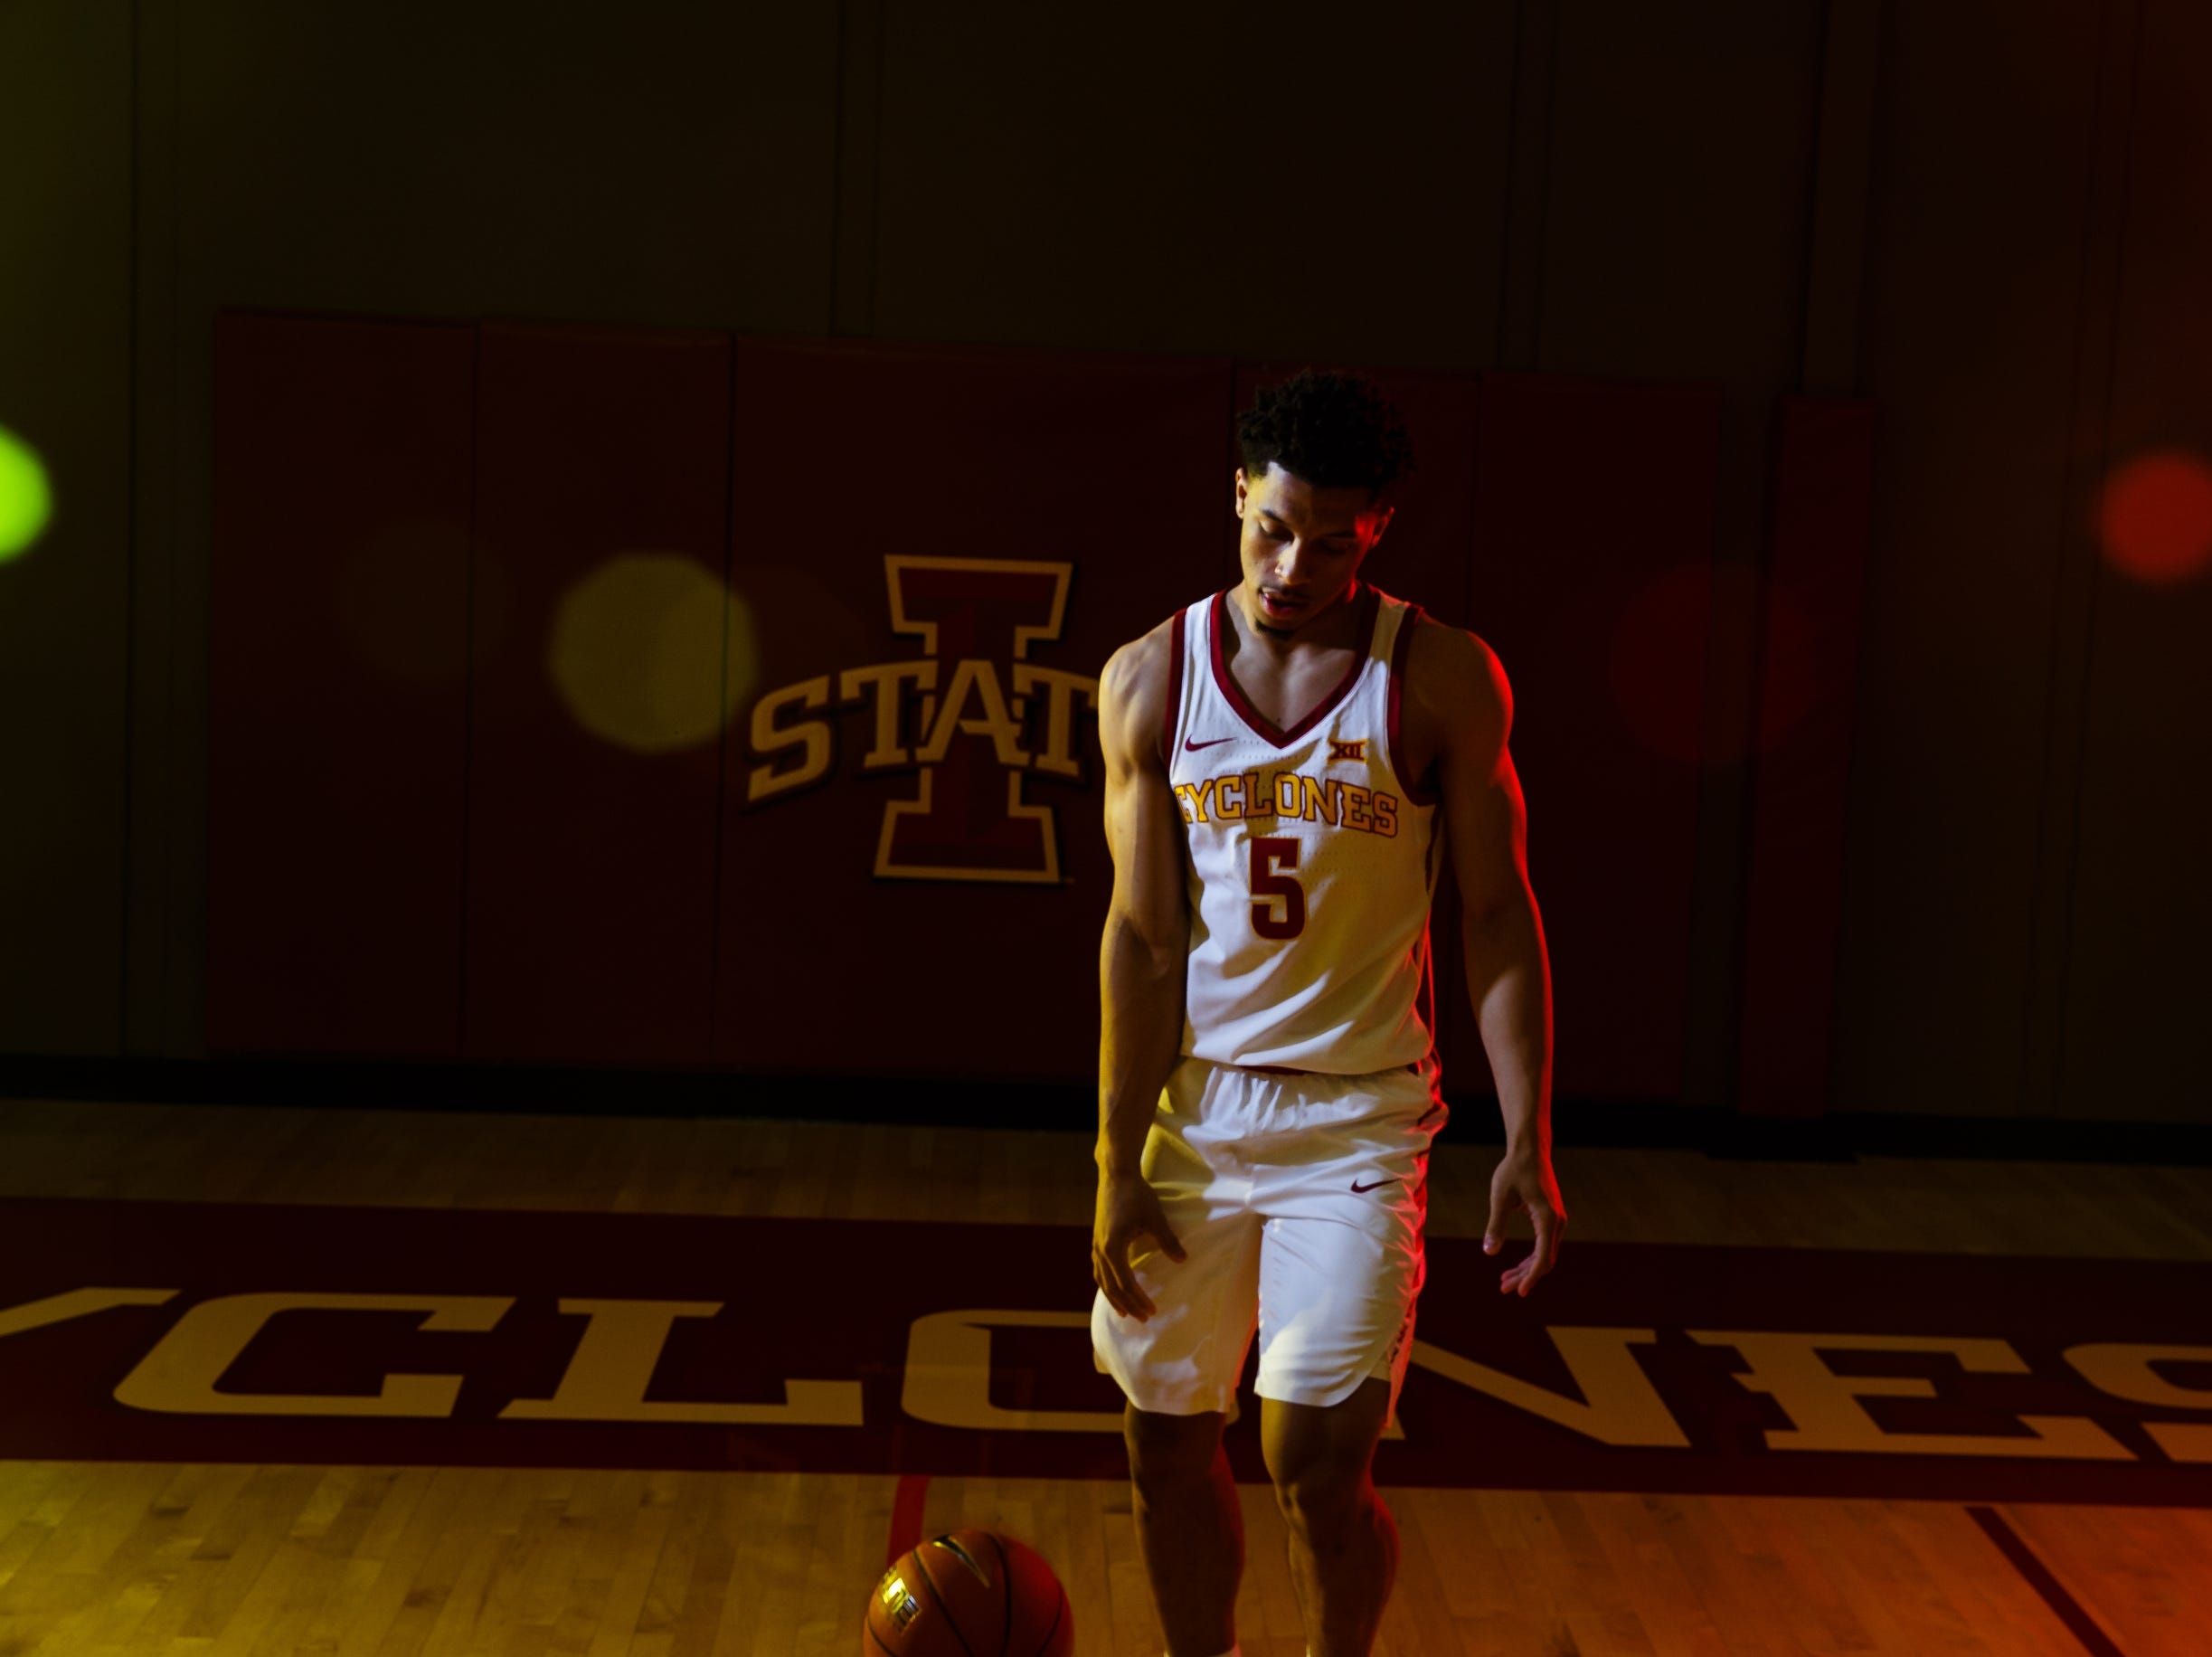 Iowa State's Lindell Wigginton poses for a photo during media day on Thursday, Oct. 11, 2018, in Ames.